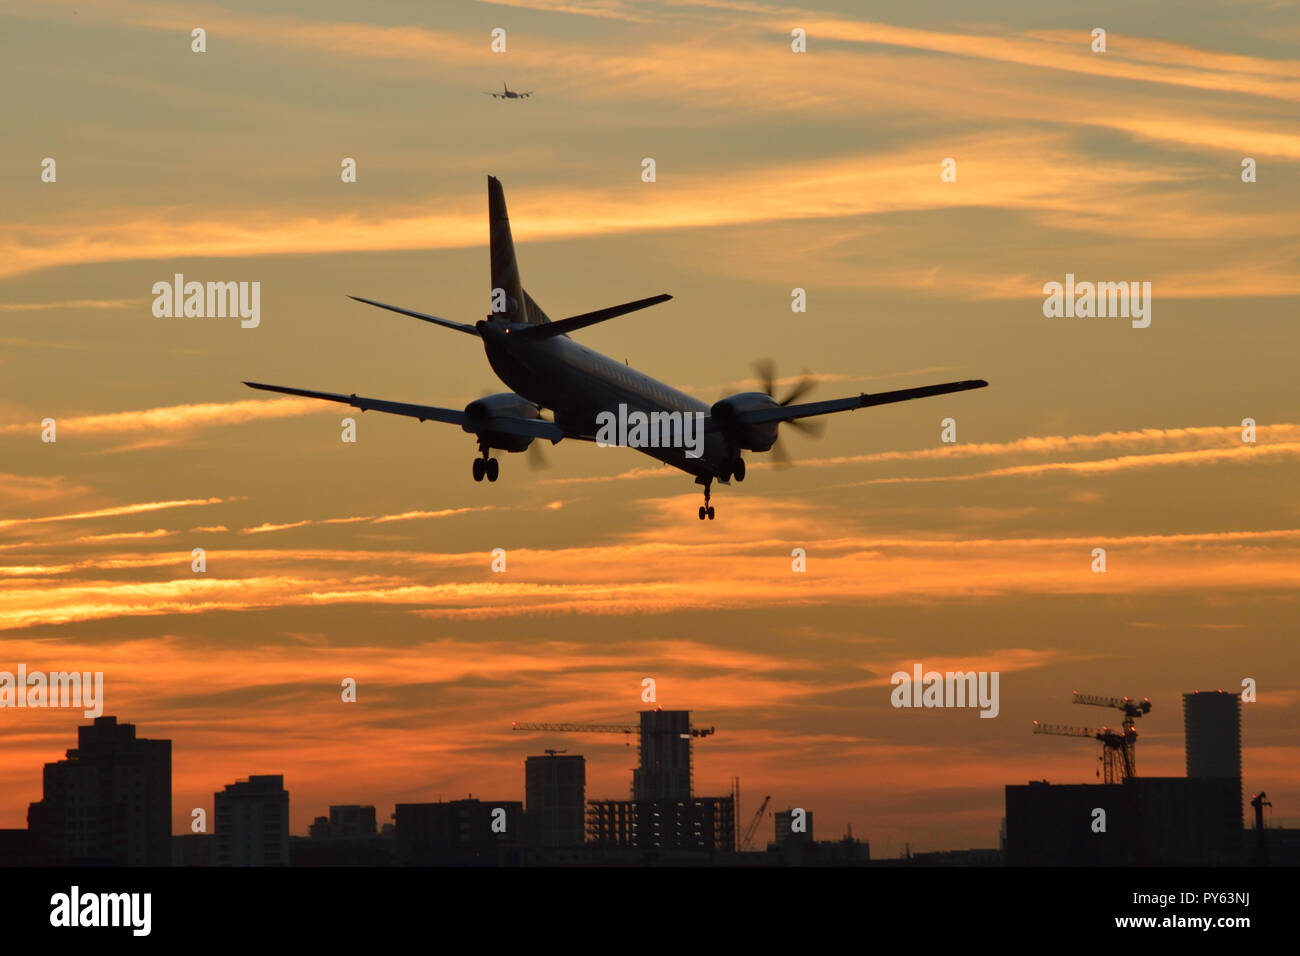 A small turbo-prop passenger plane comes in to land at London City Airport at sunset - Stock Image